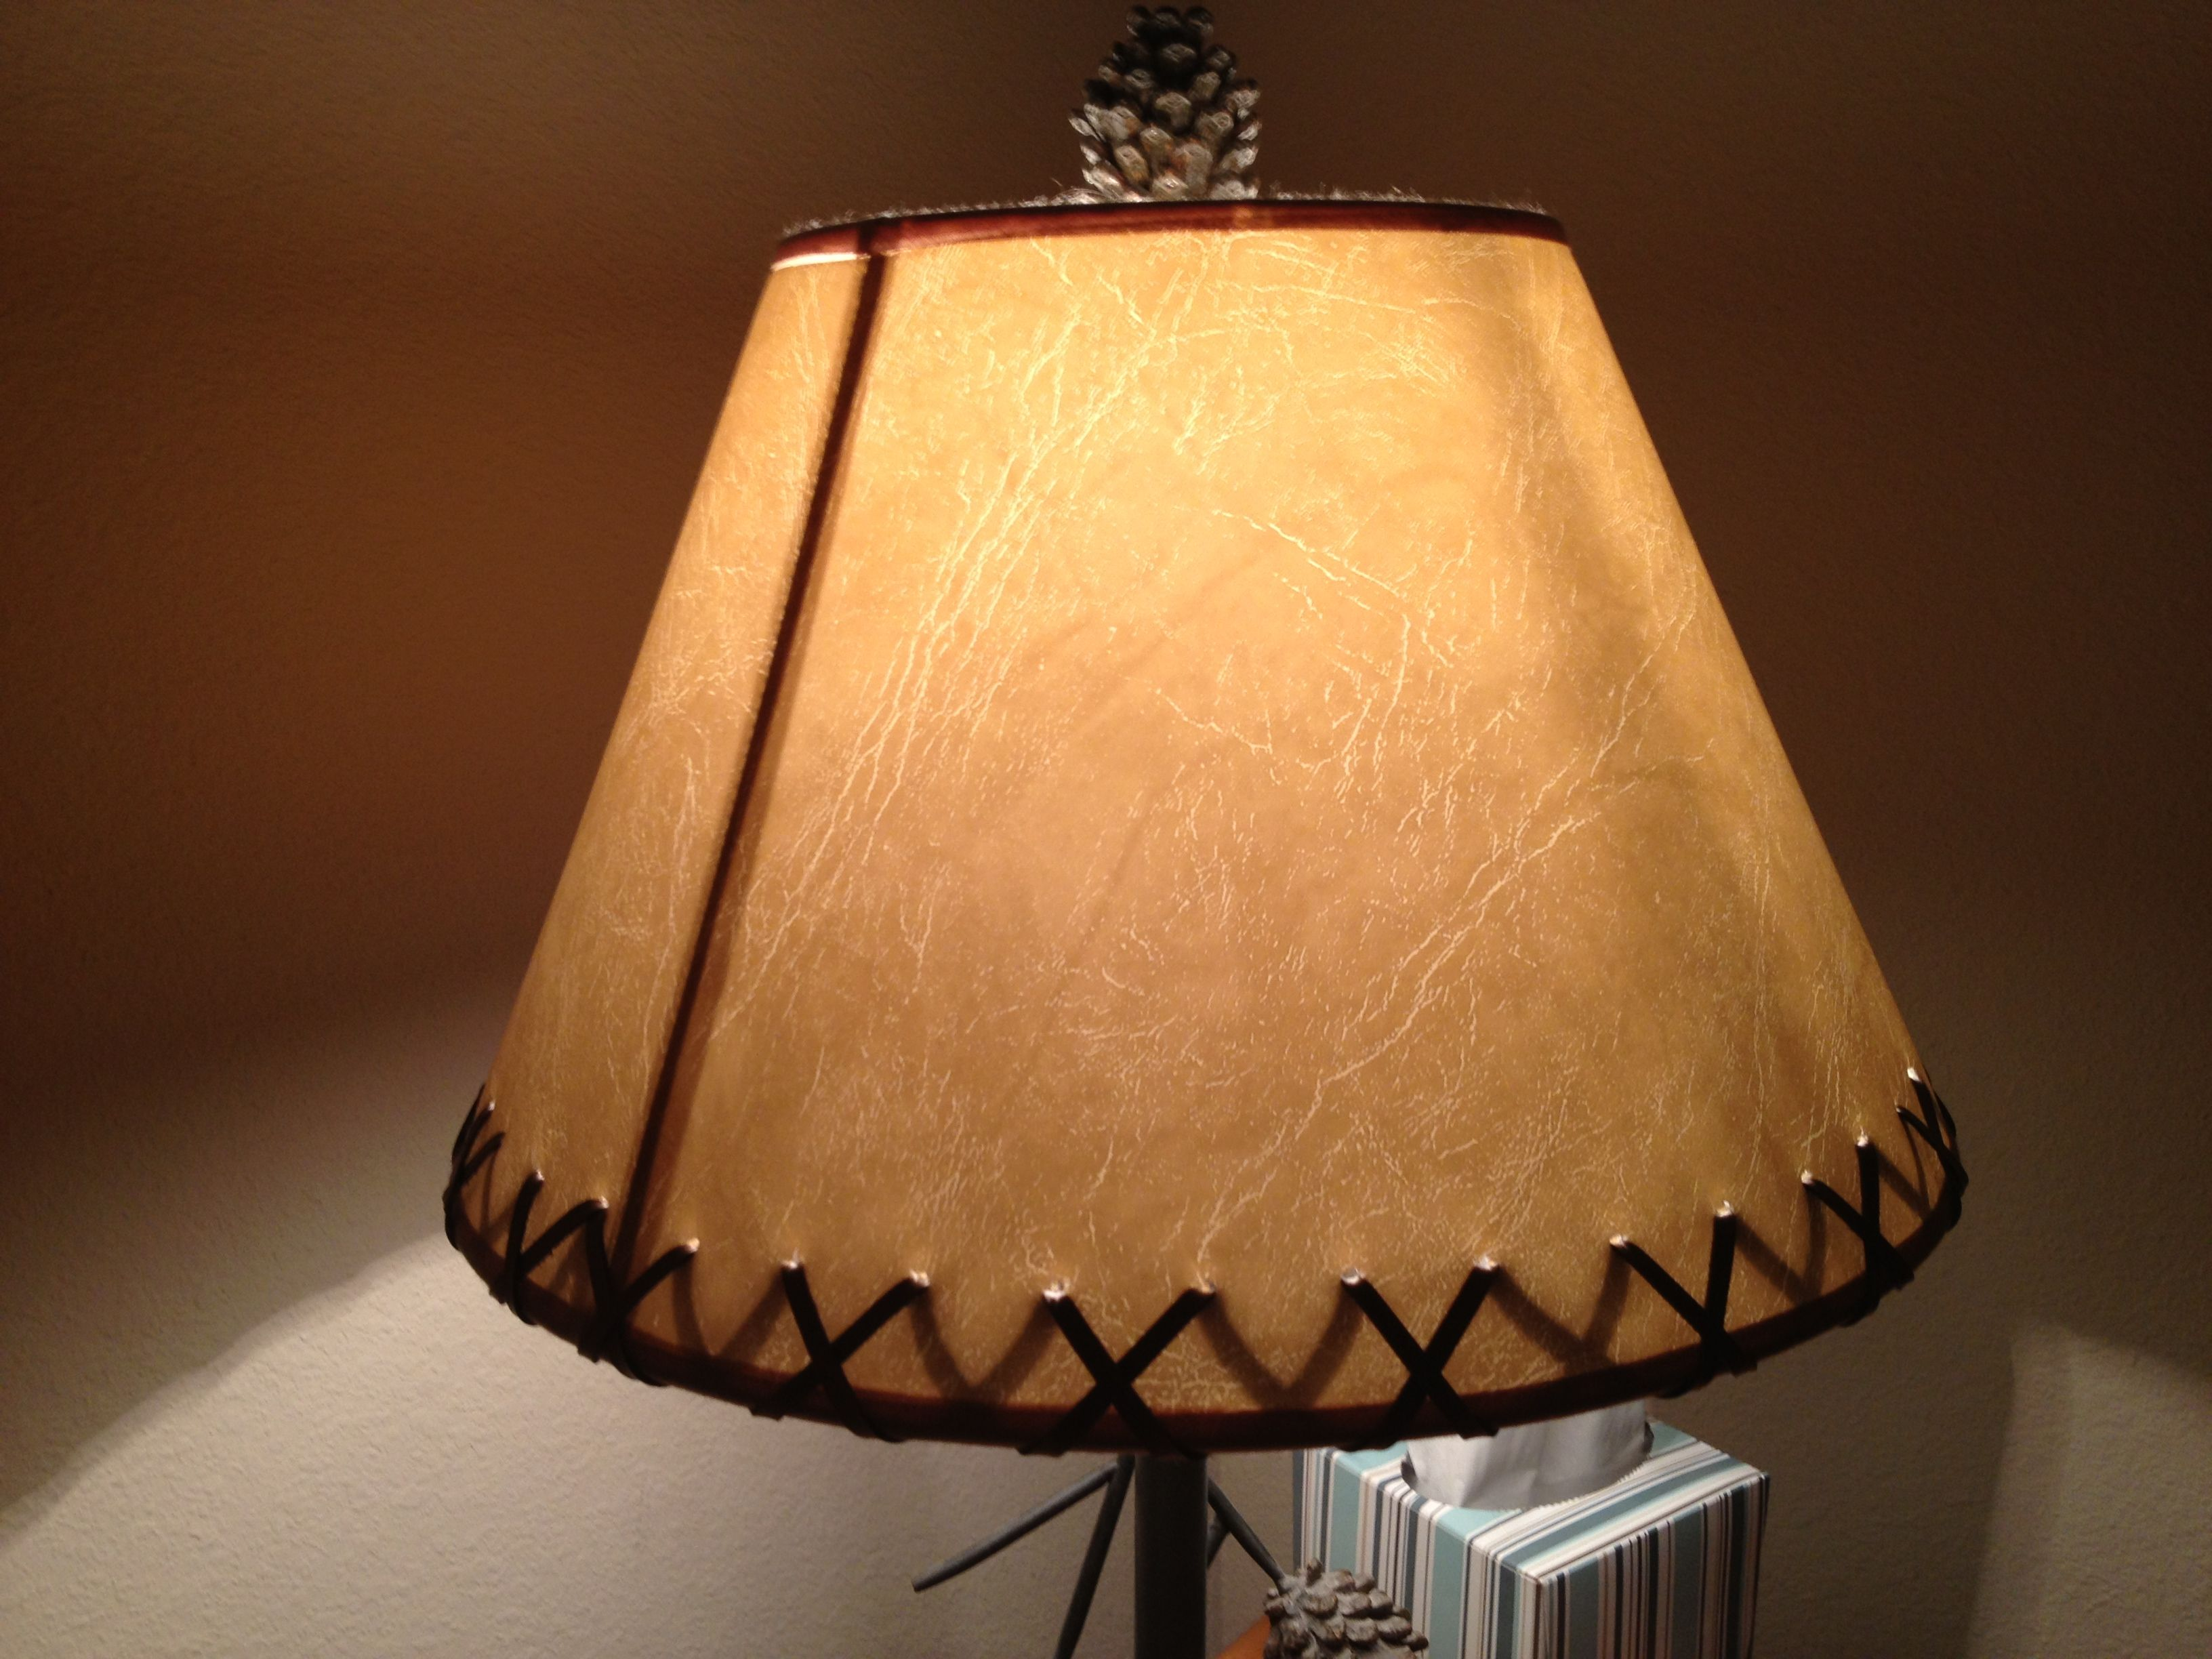 Punch Holes In Your Lampshade An Thread Leather Through It